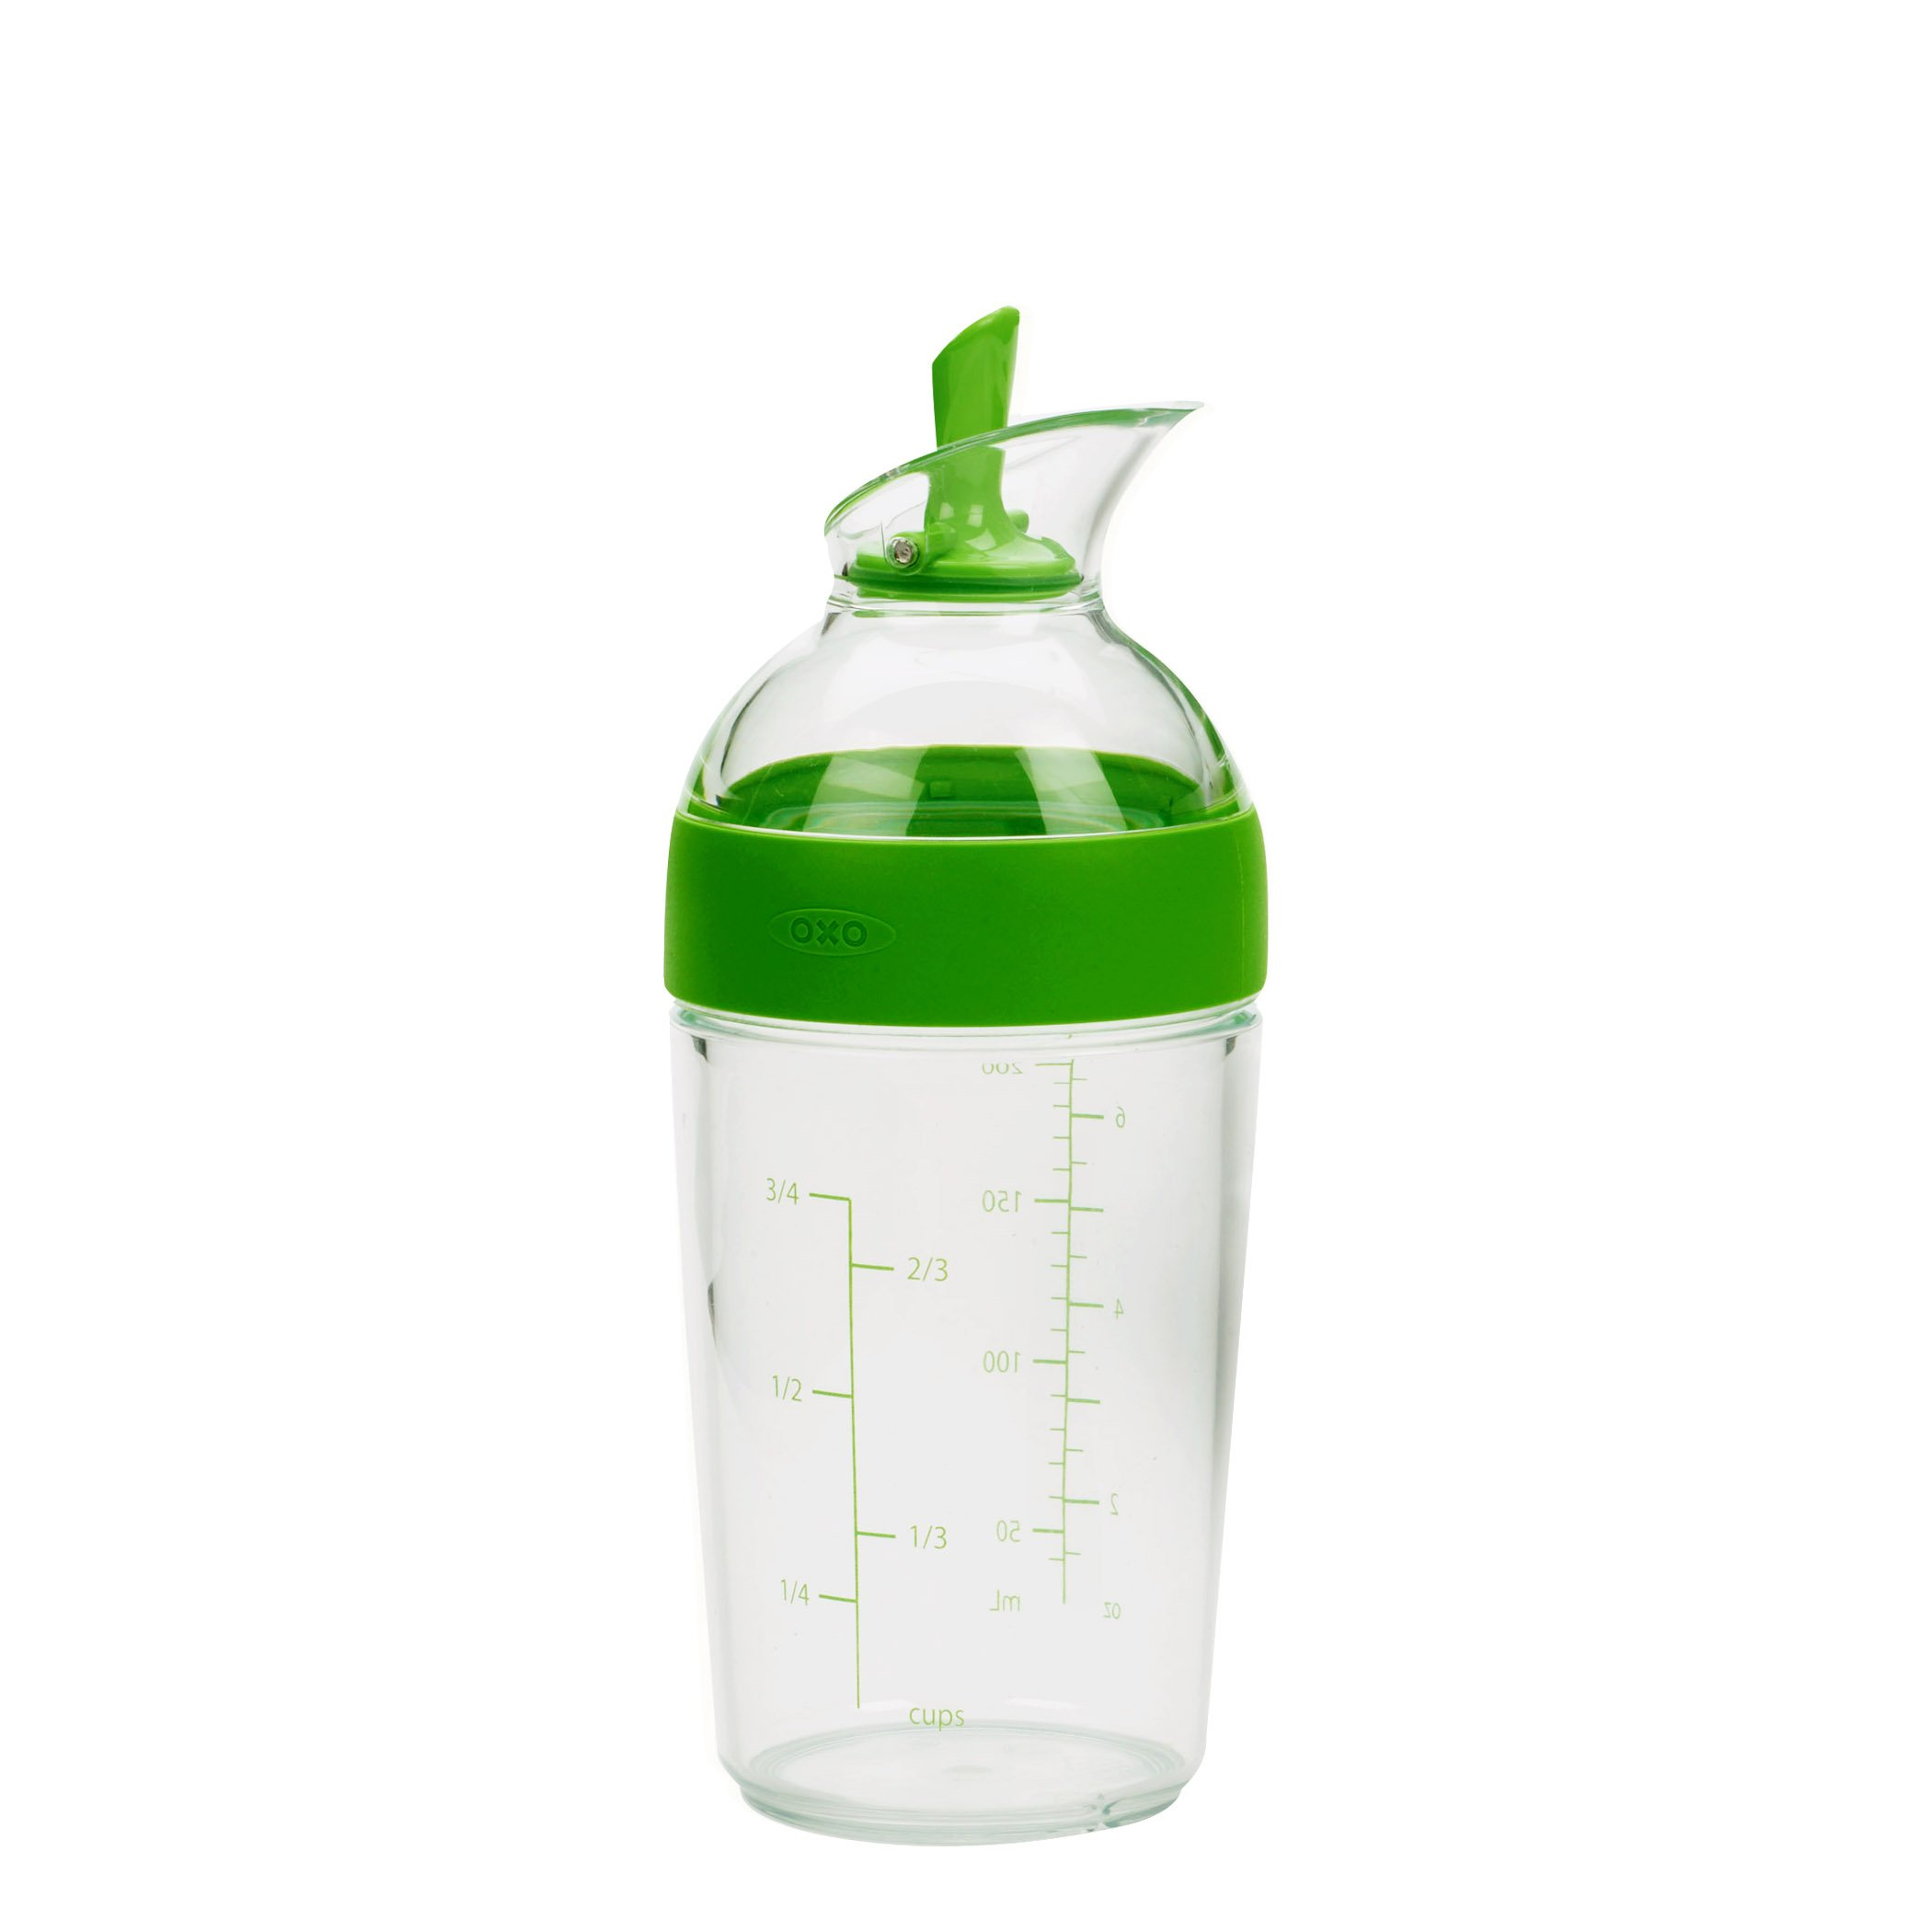 OXO Good Grips Little Salad Dressing Shaker, Green by OXO